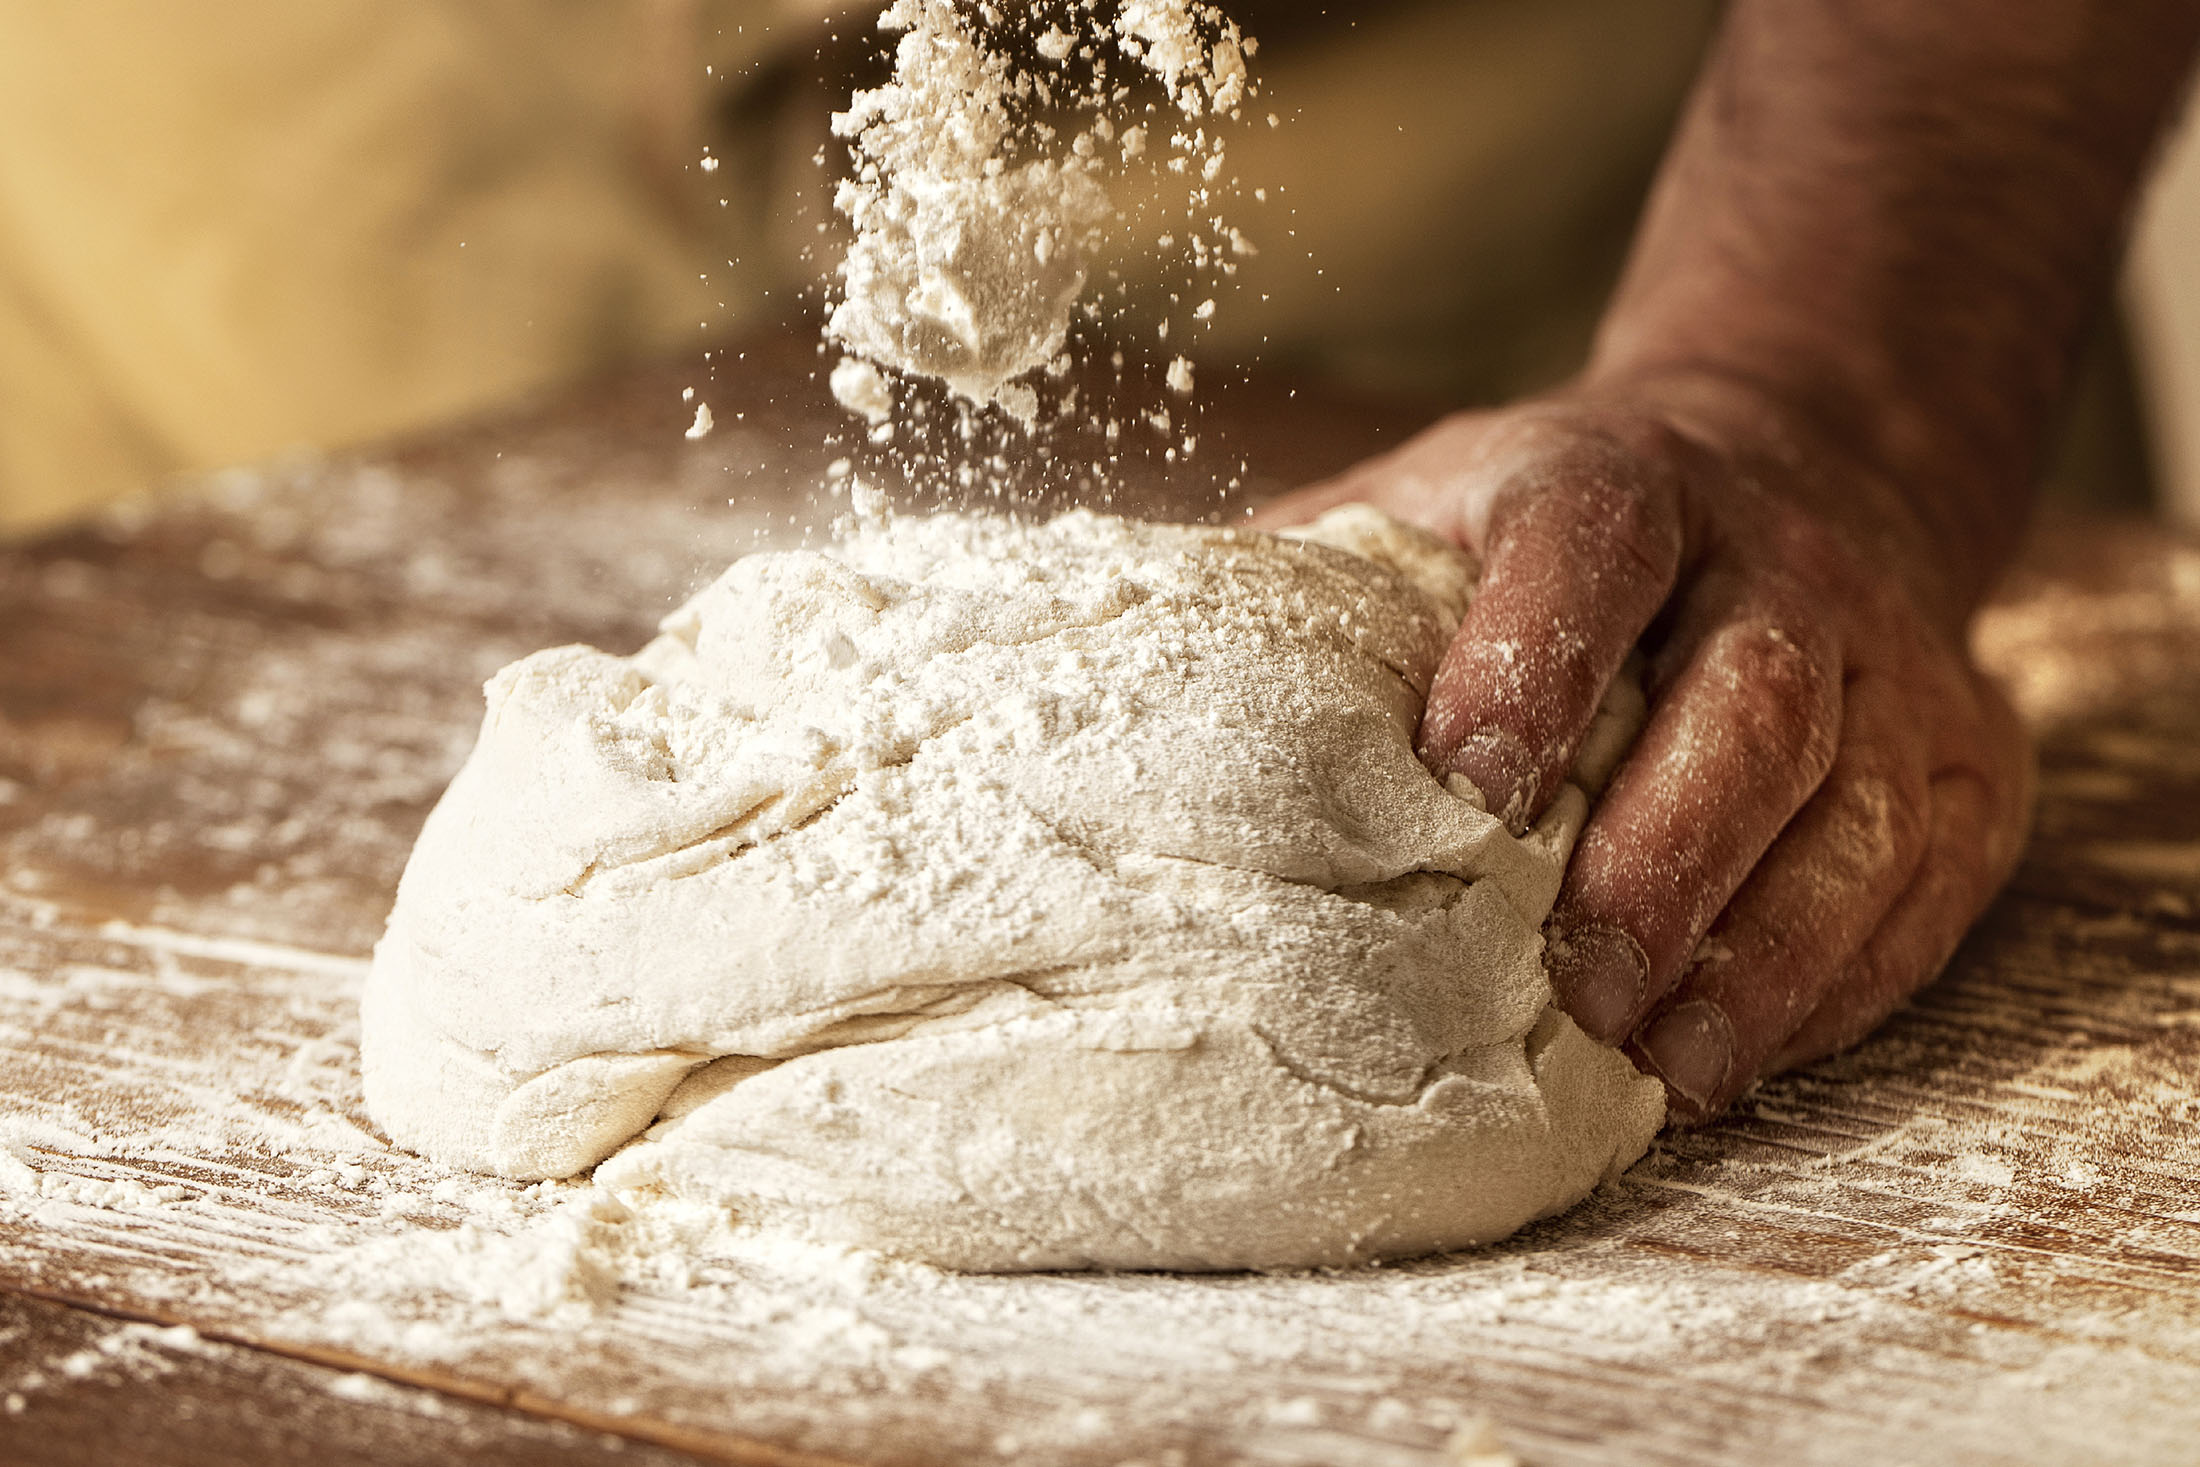 Close-up photograph of a hand kneading dough